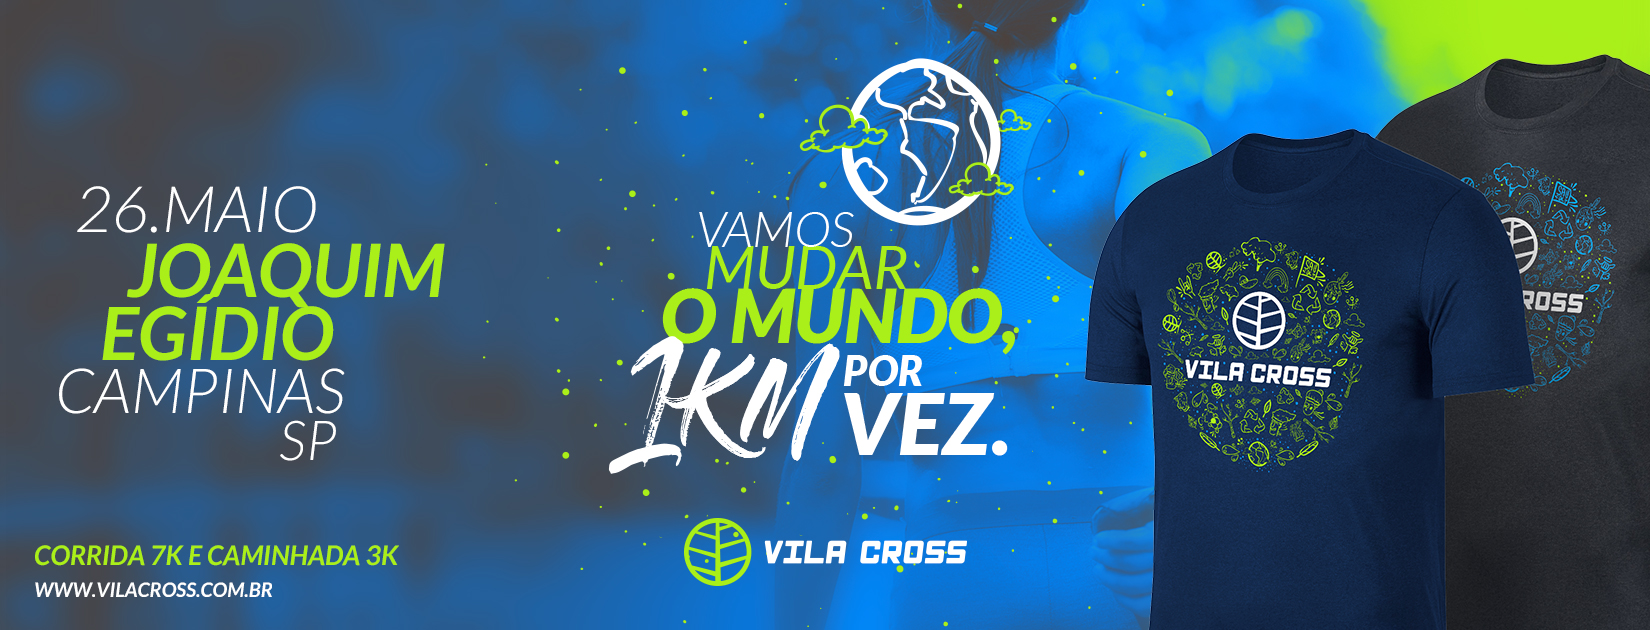 Corrida Vila Cross